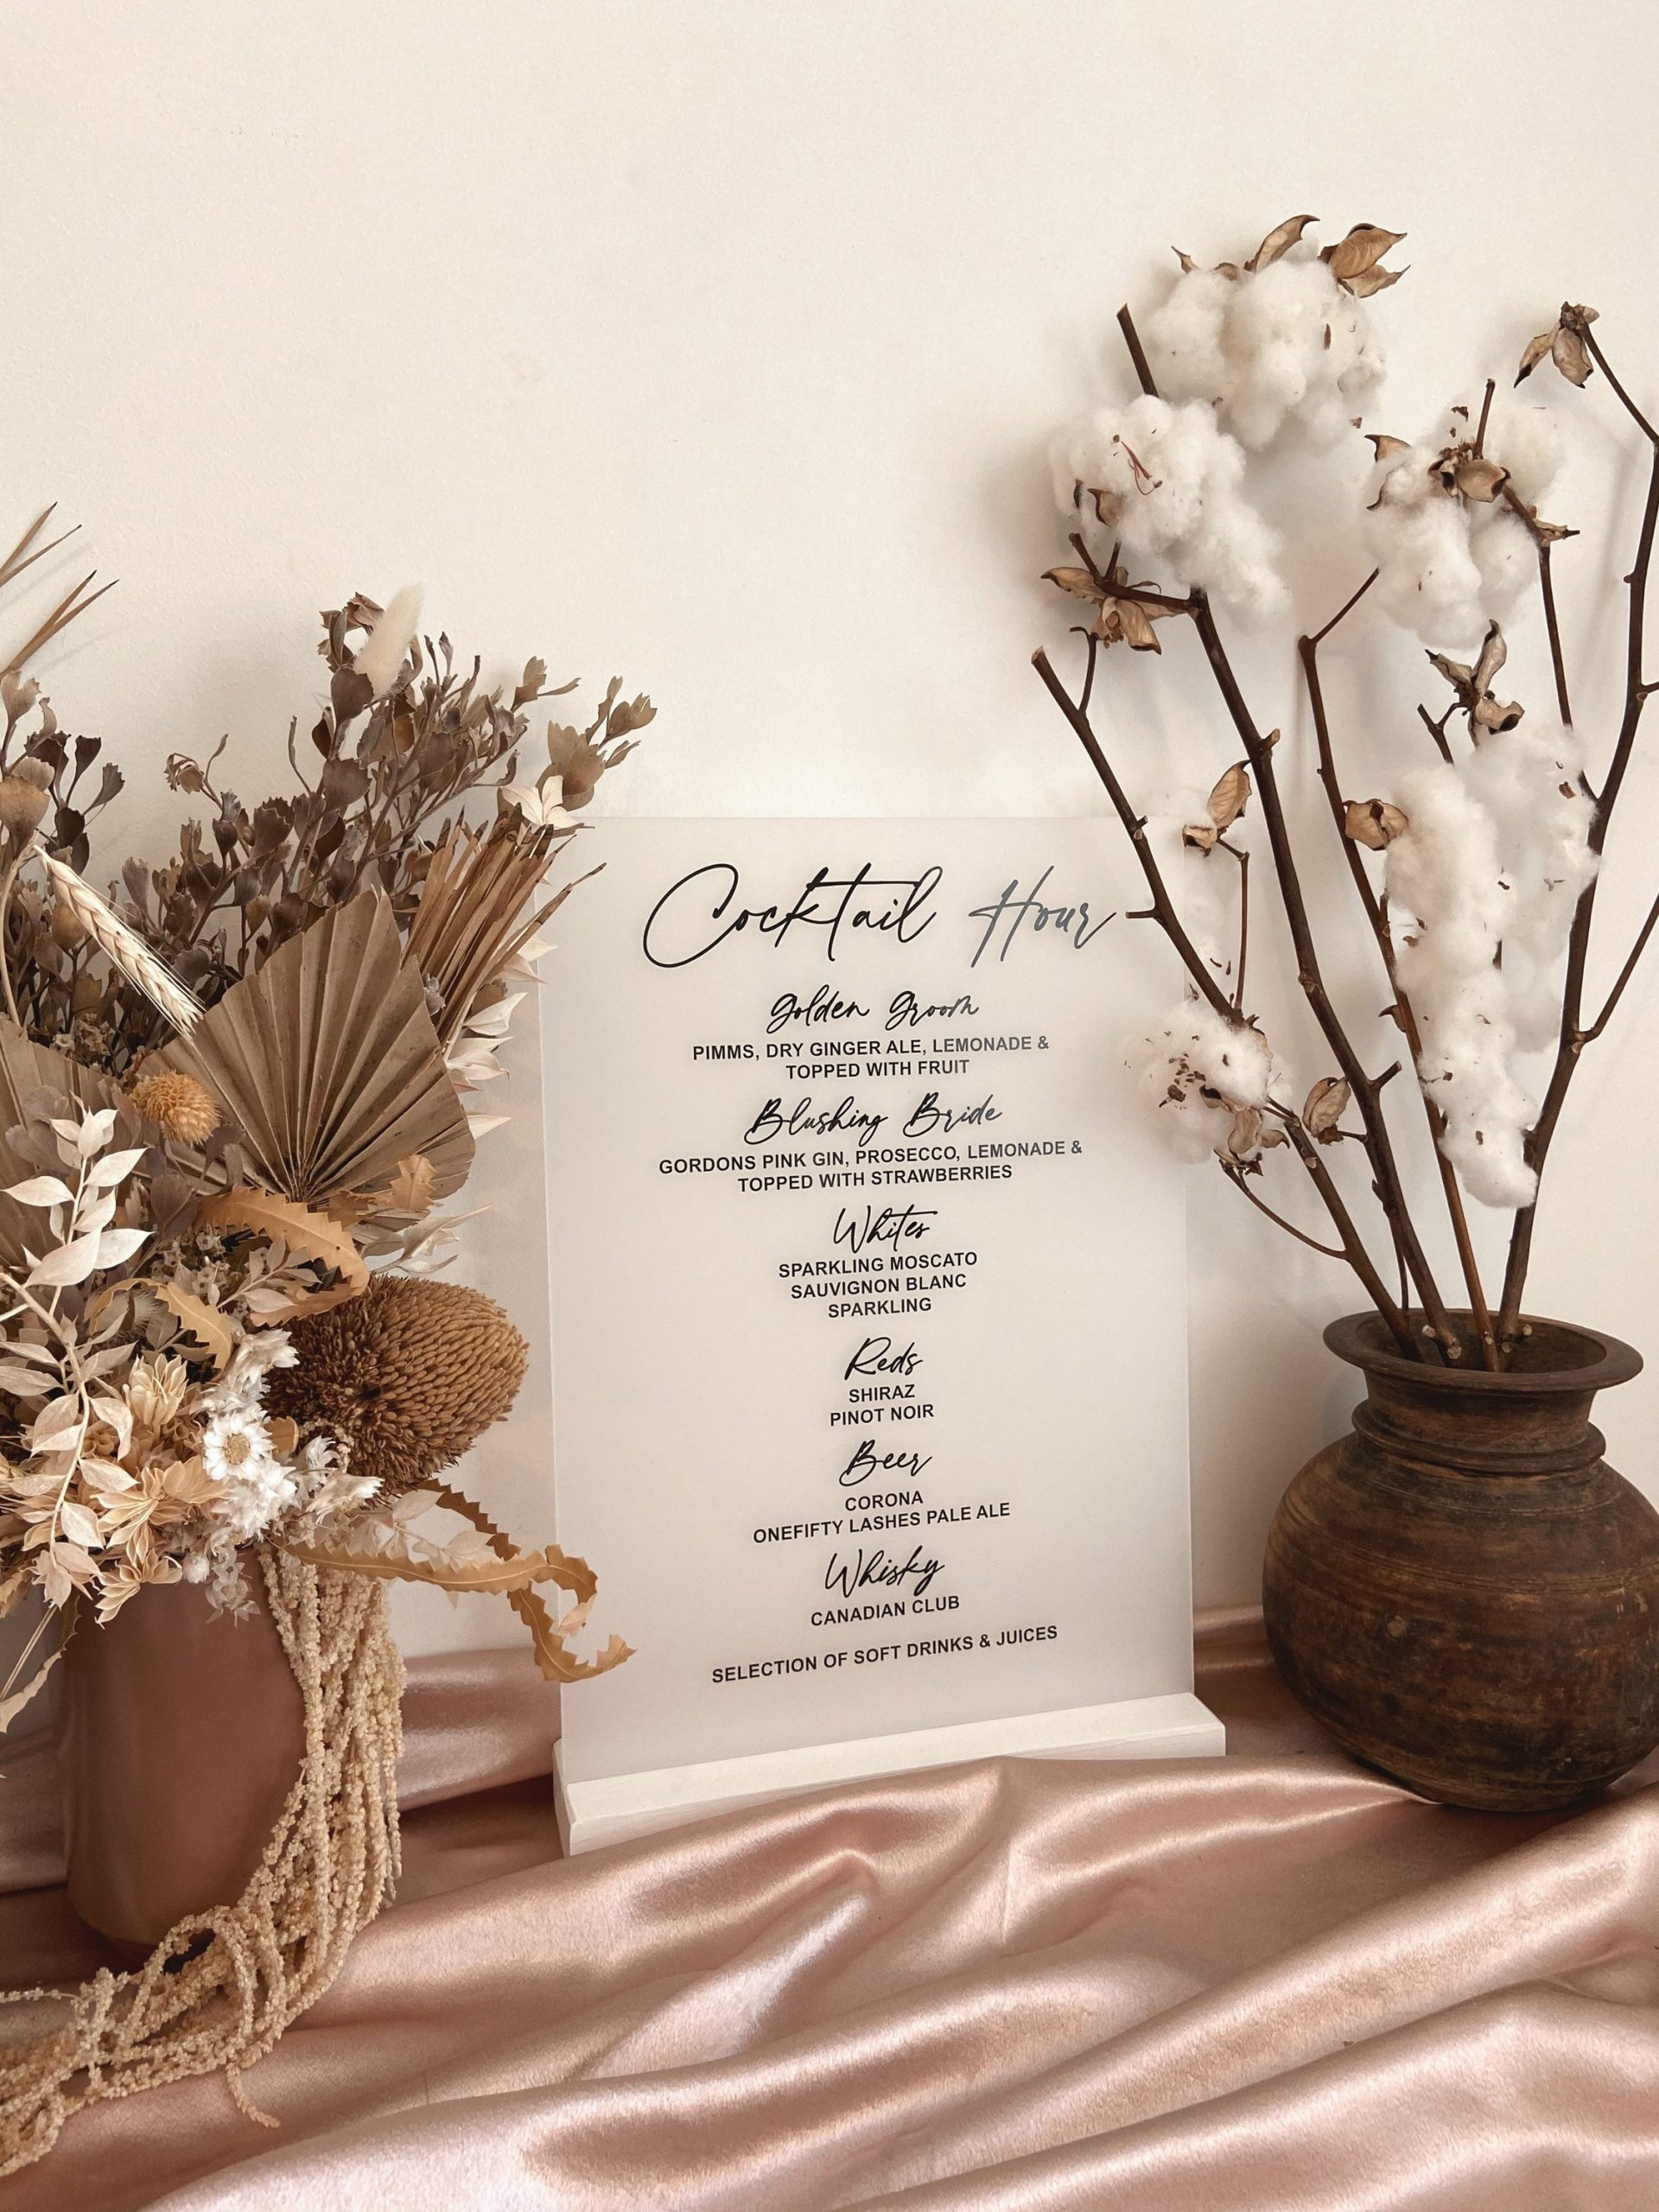 Acrylic Cocktail Bar Menu Sign | Wedding Drinks Frosted White Black Acrylic Welcome Menus Willow & Ink